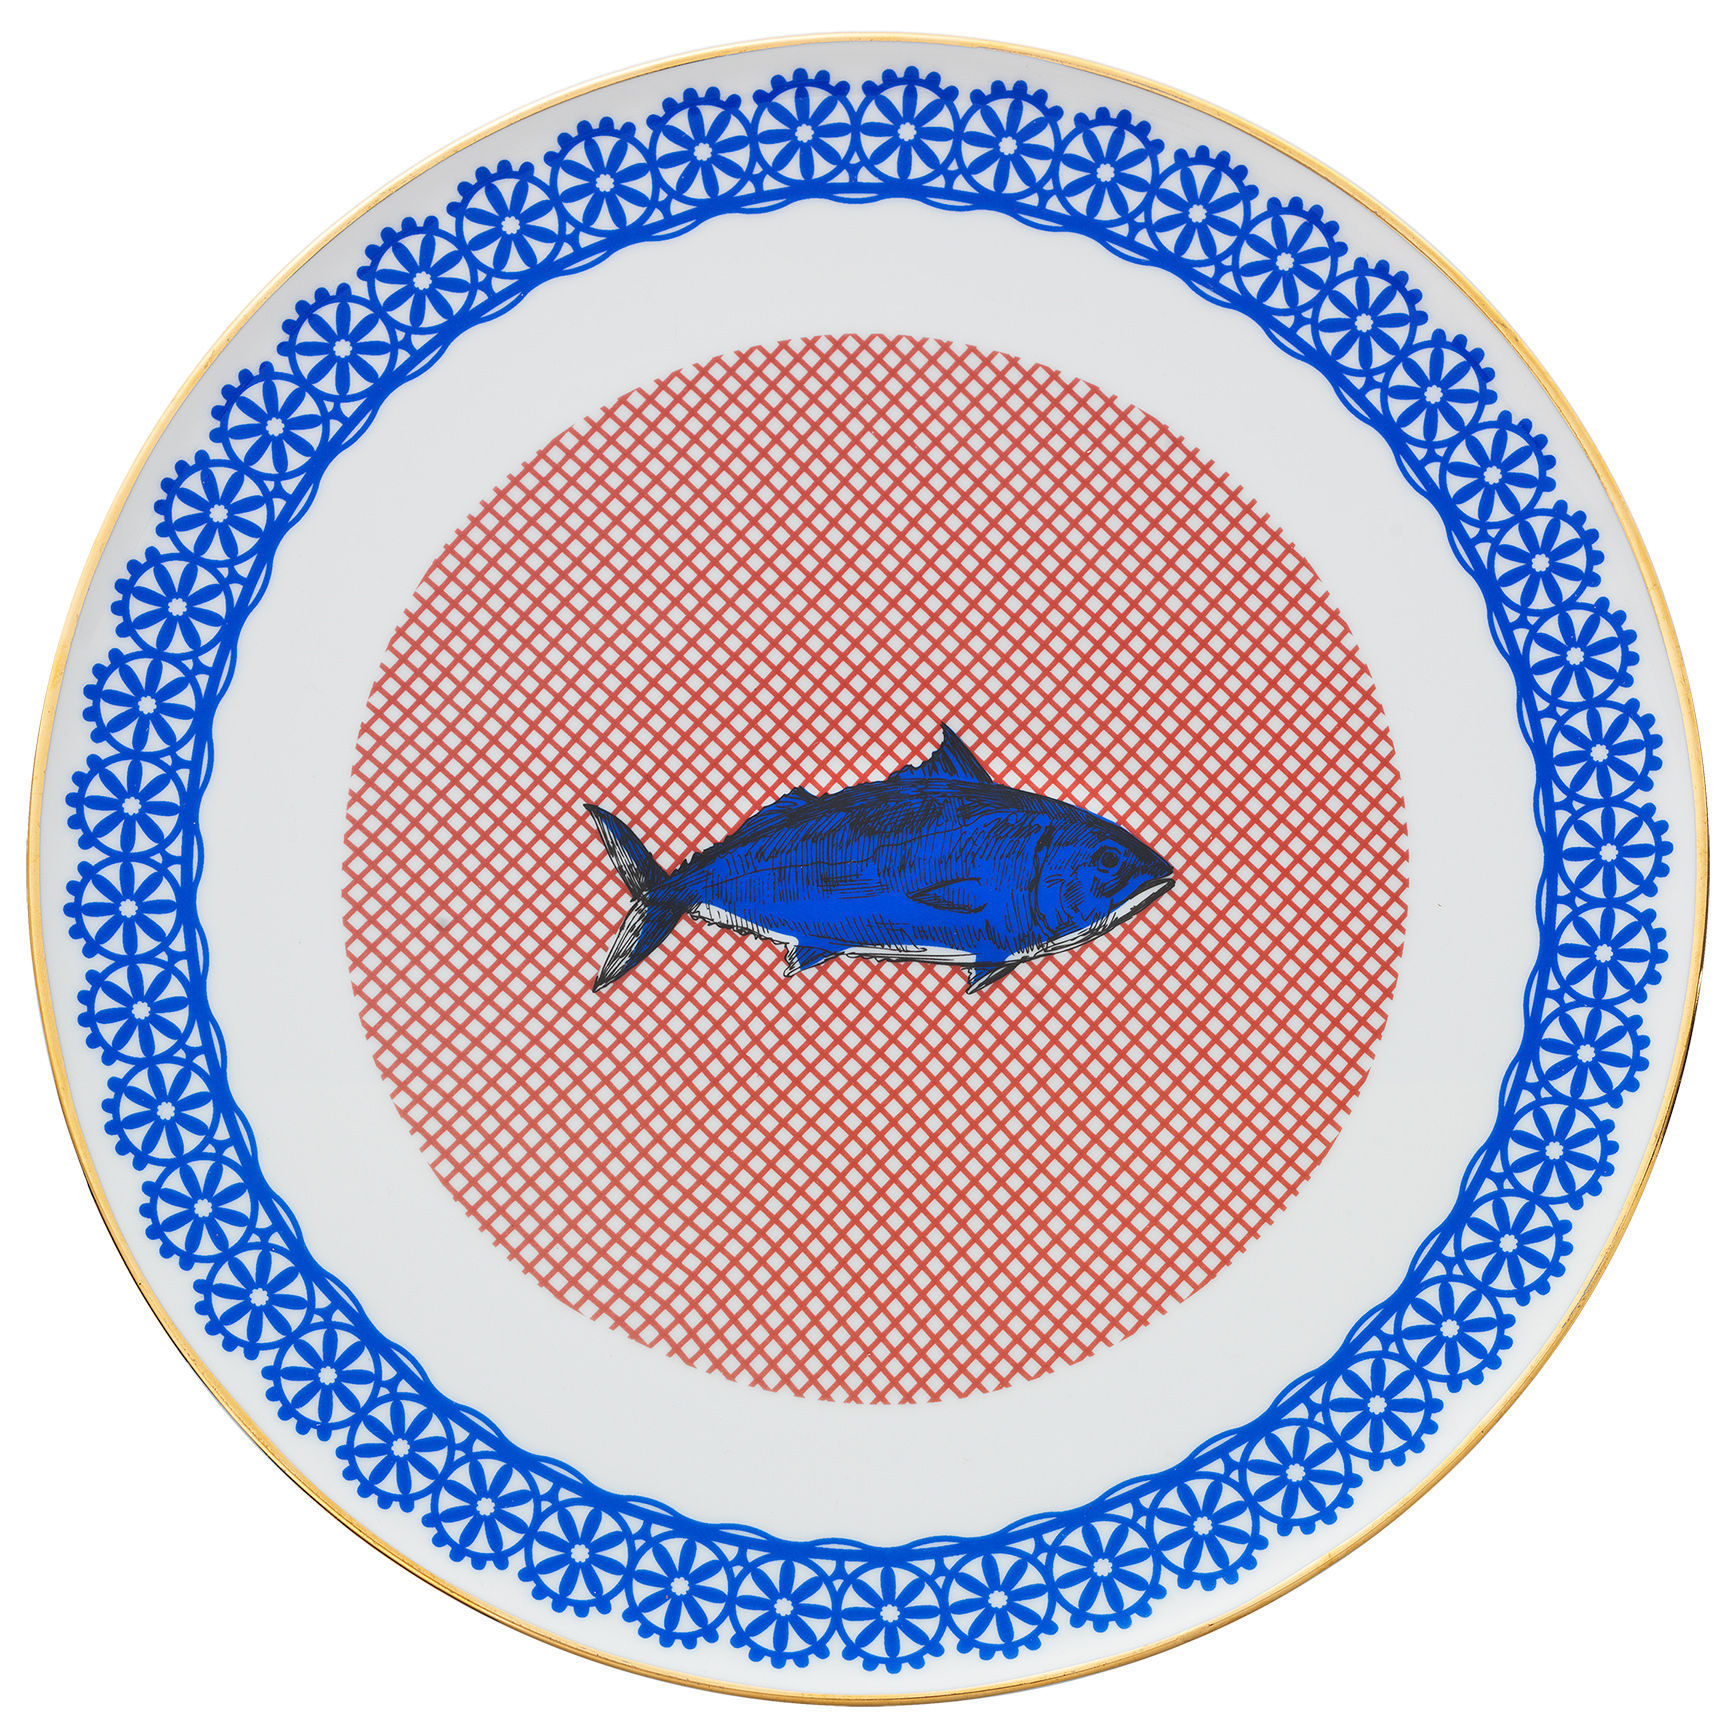 Tableware - Plates - Bel Paese - Pesce Presentation plate - / Ø 32 cm by Bitossi Home - Fish / Blue - China